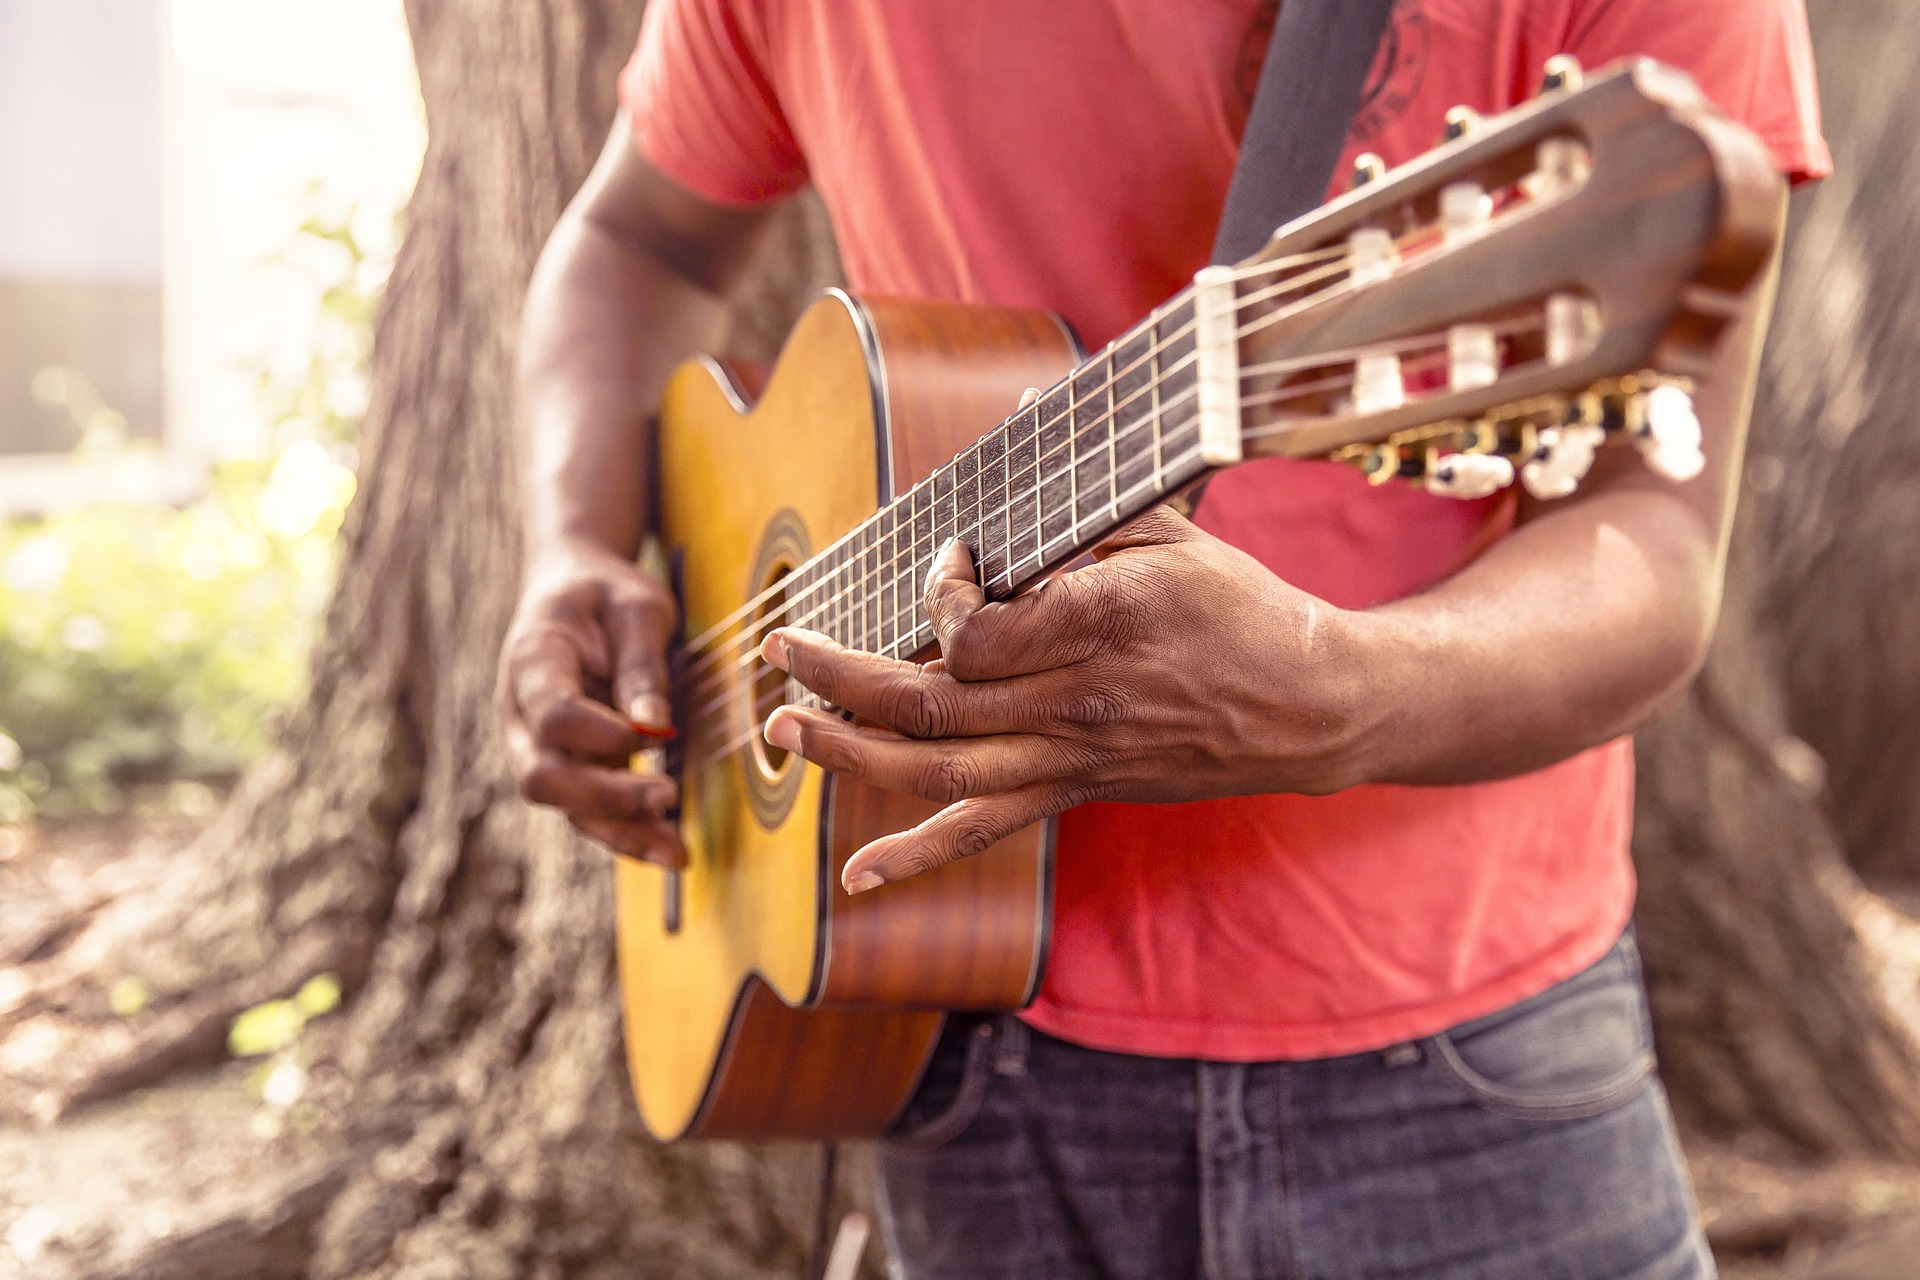 man using a guitar